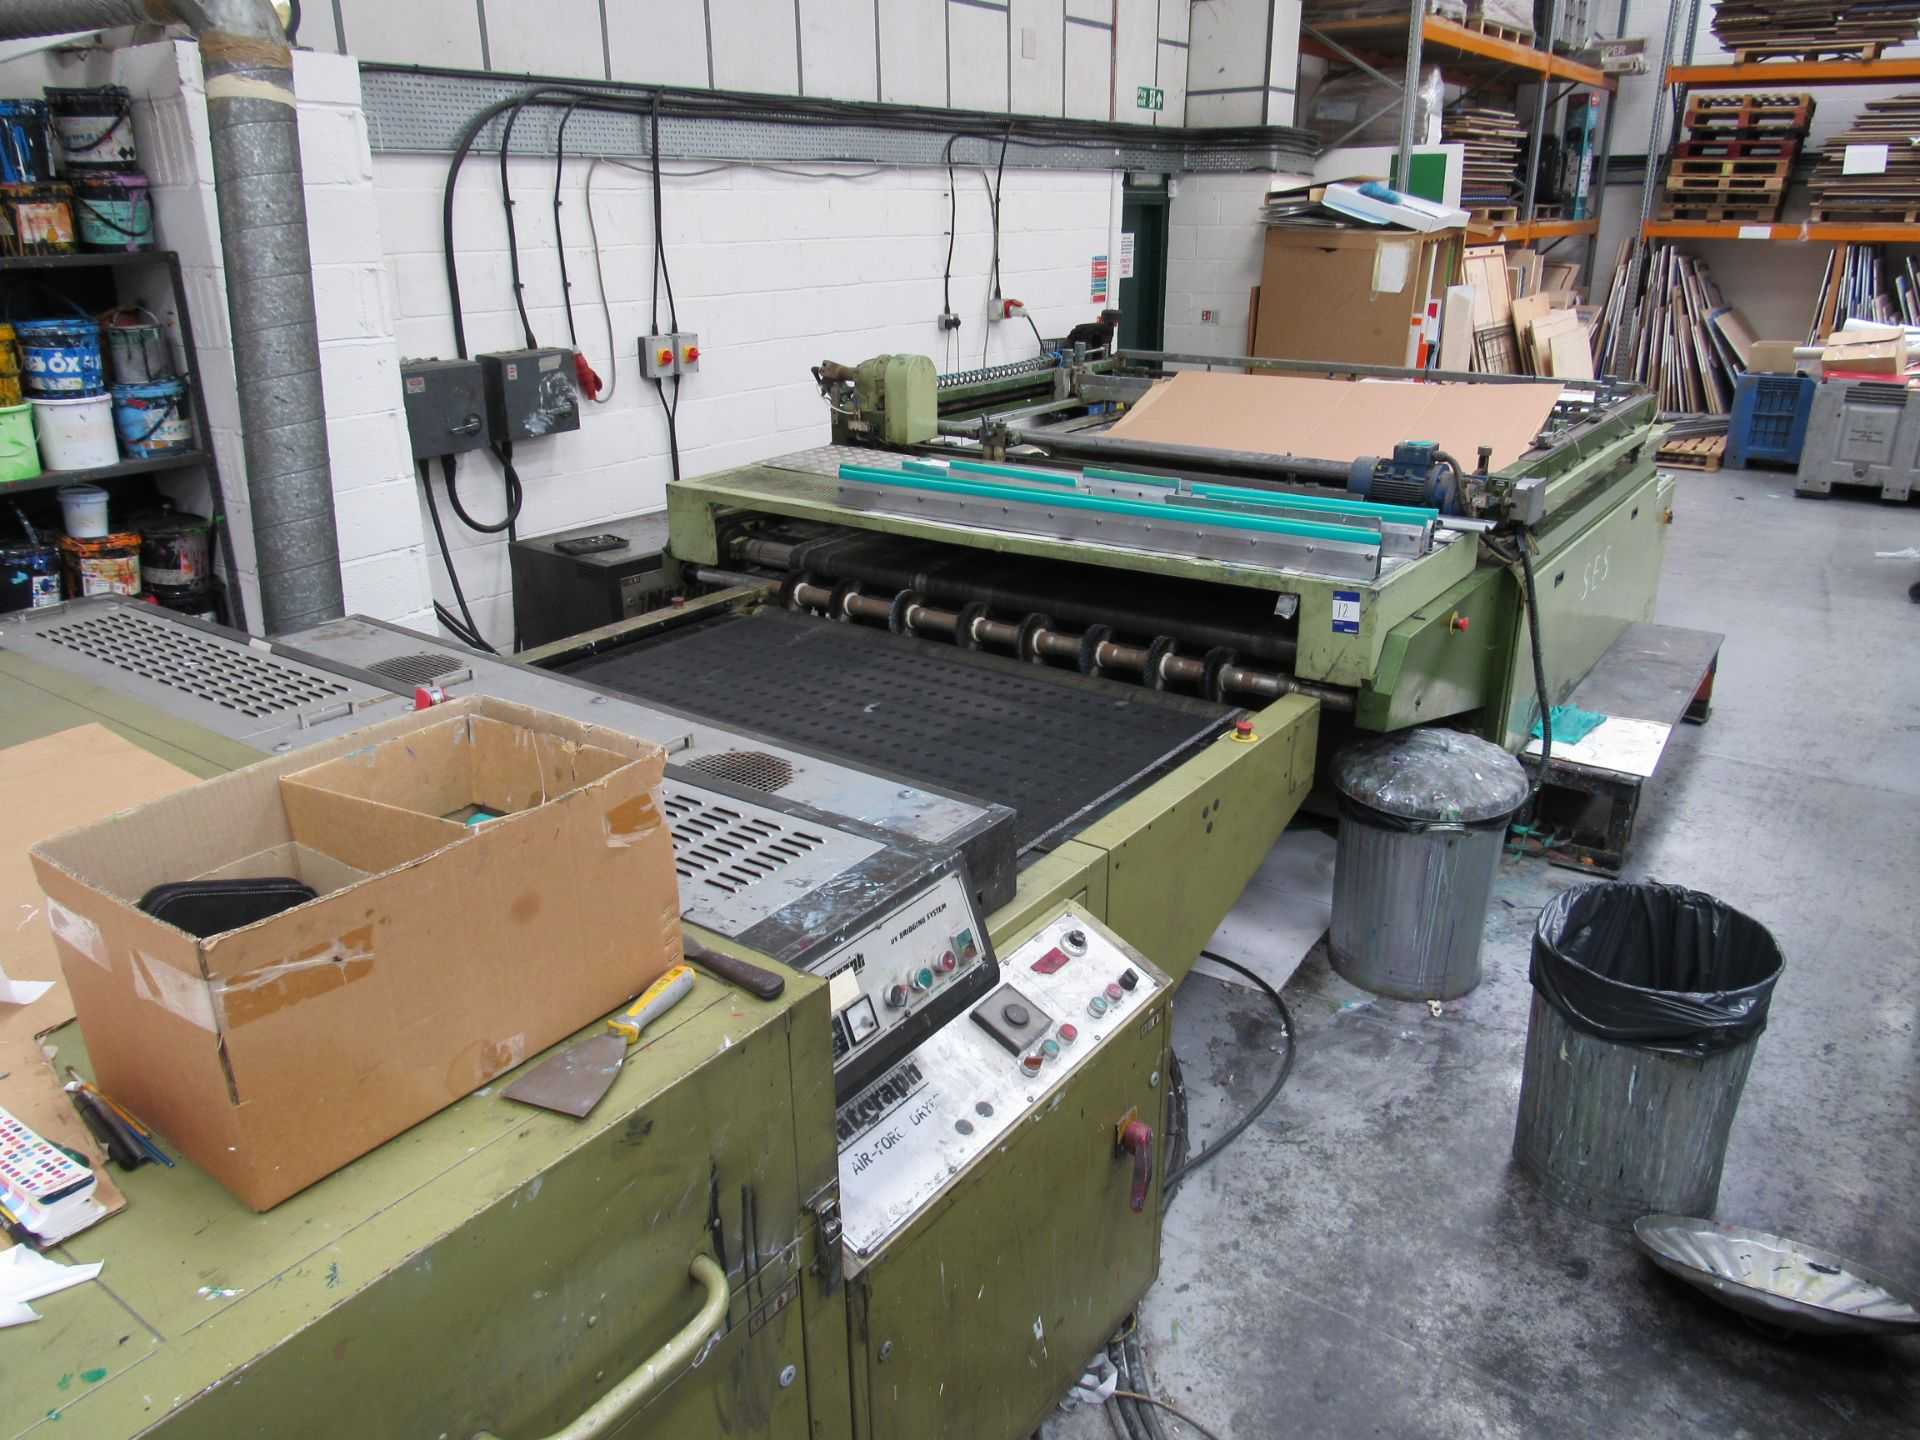 Sias Print Serifast 117.180 Screen Printer Serial Number 88745 with Natgraph 155-2000E UV Dryer Line - Image 10 of 10